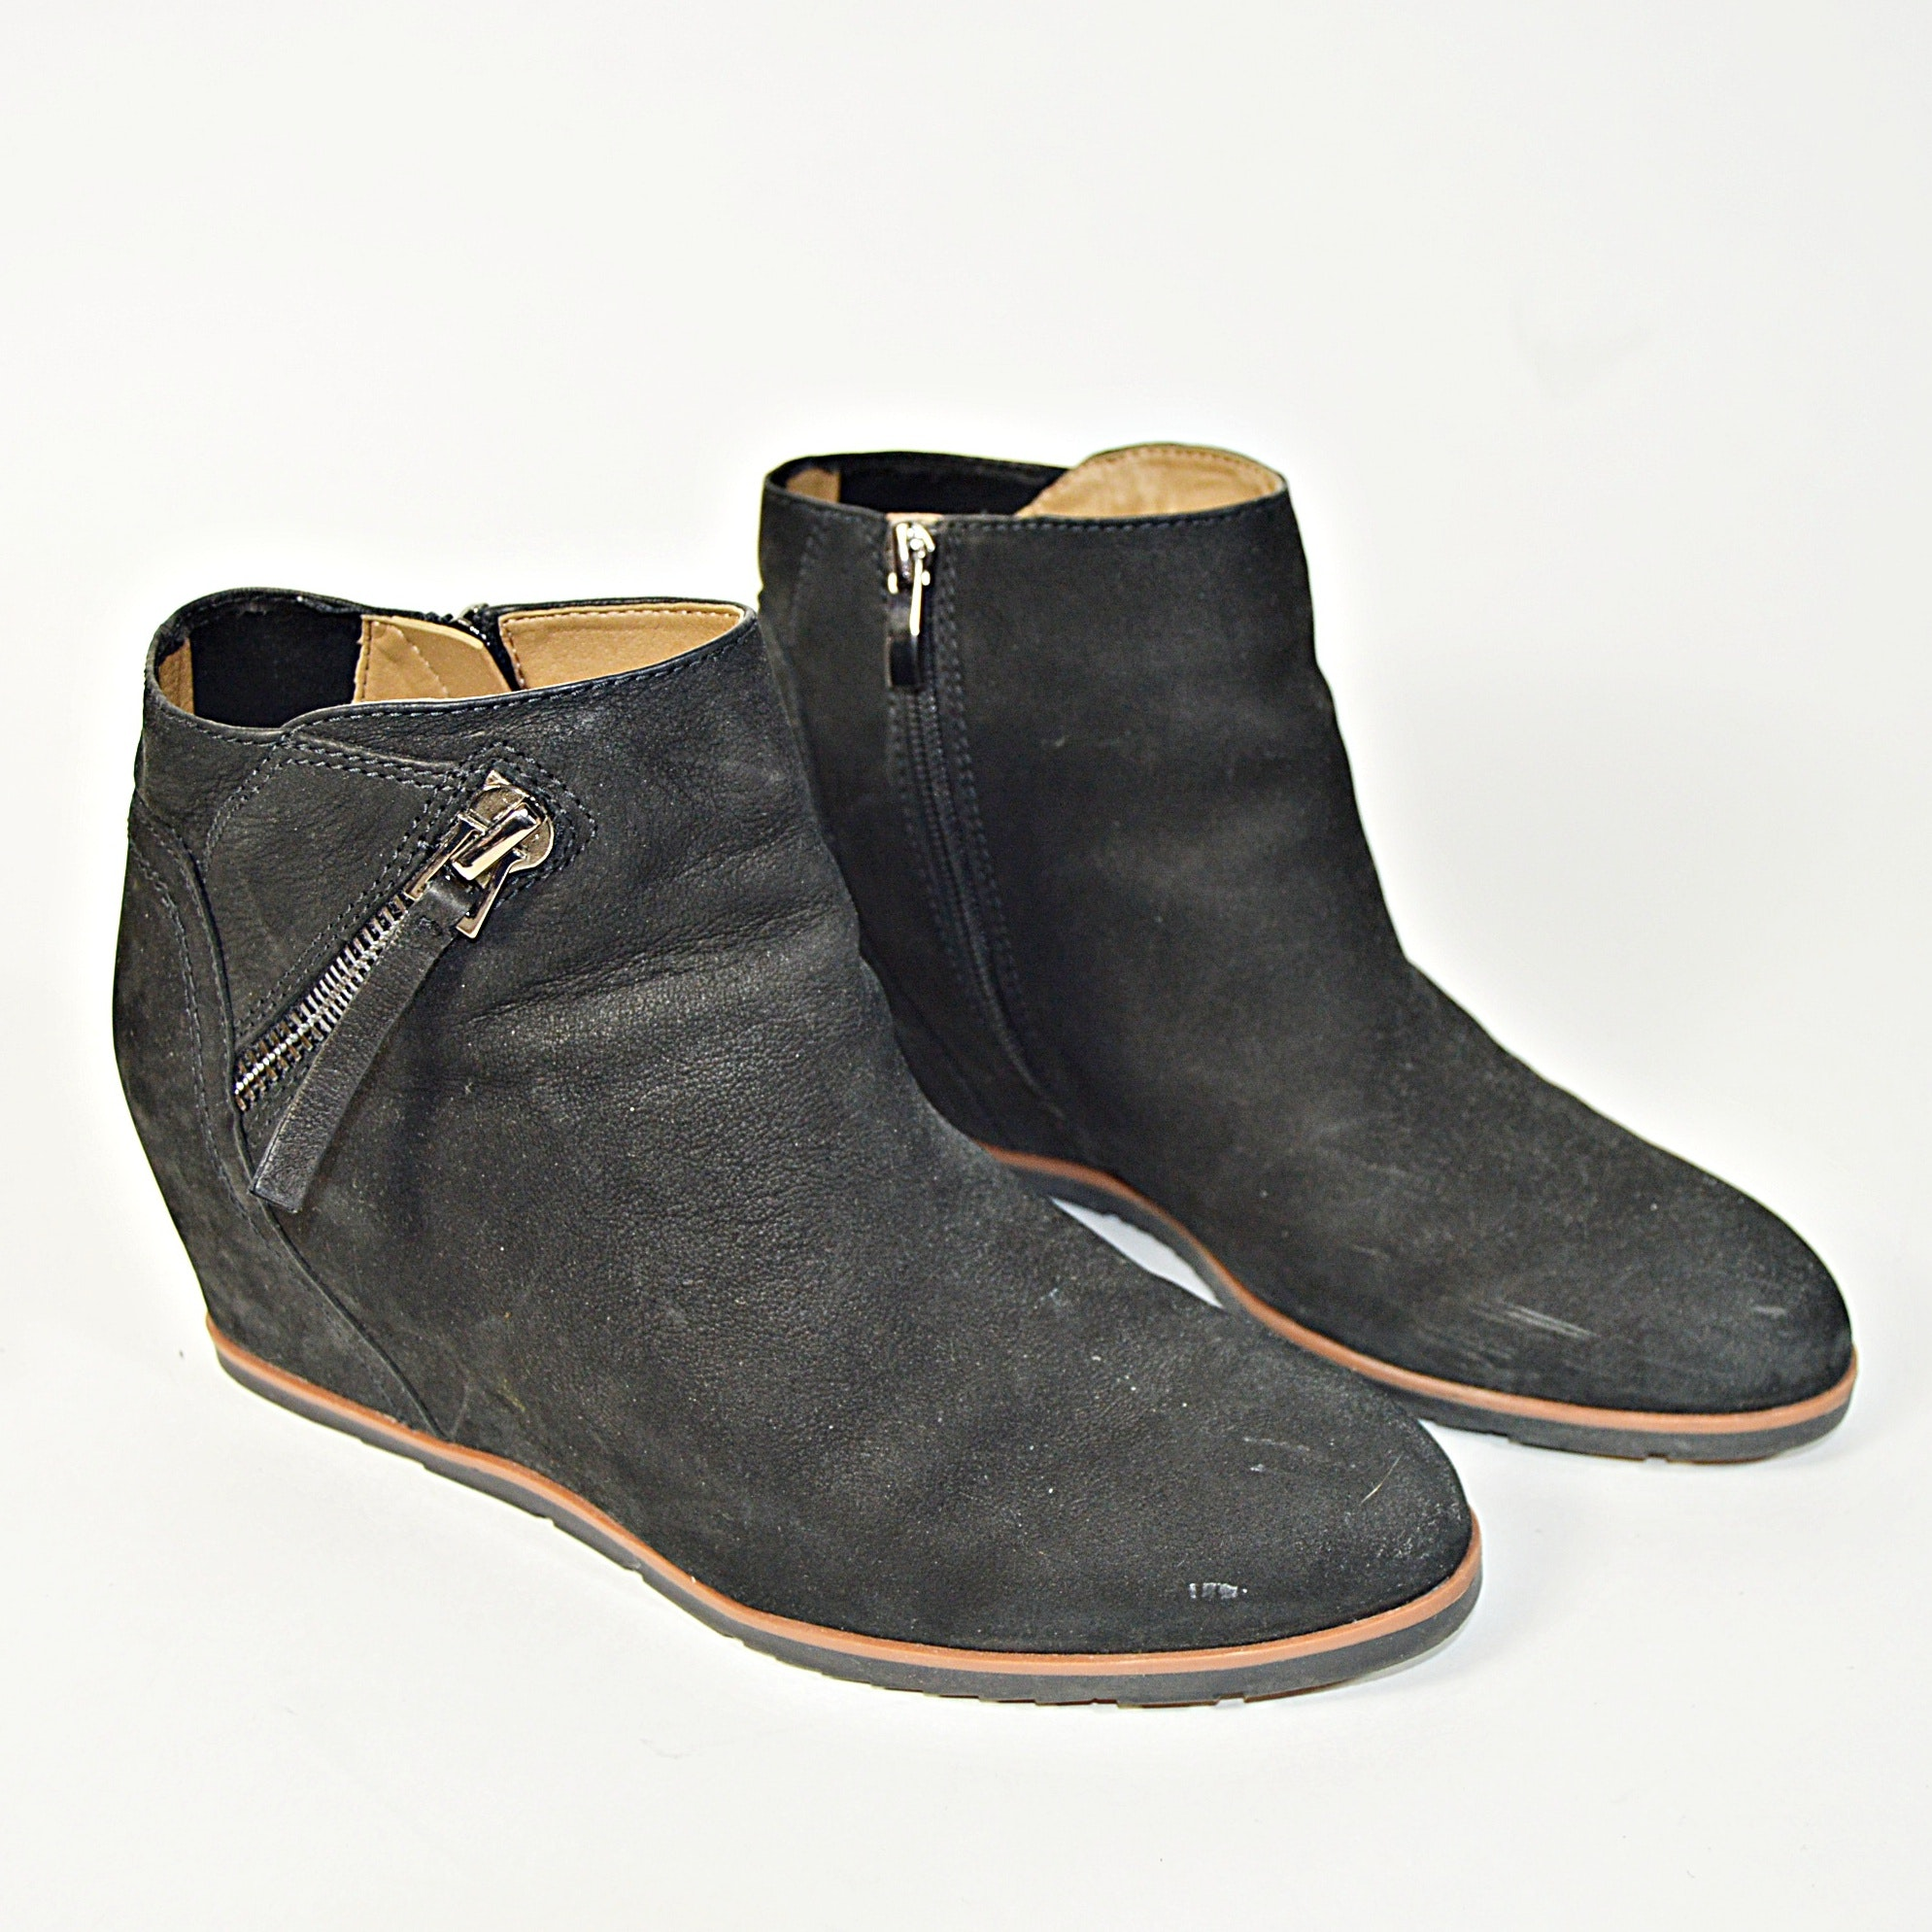 Franco Sarto Black Suede Leather Boots, 9.5M